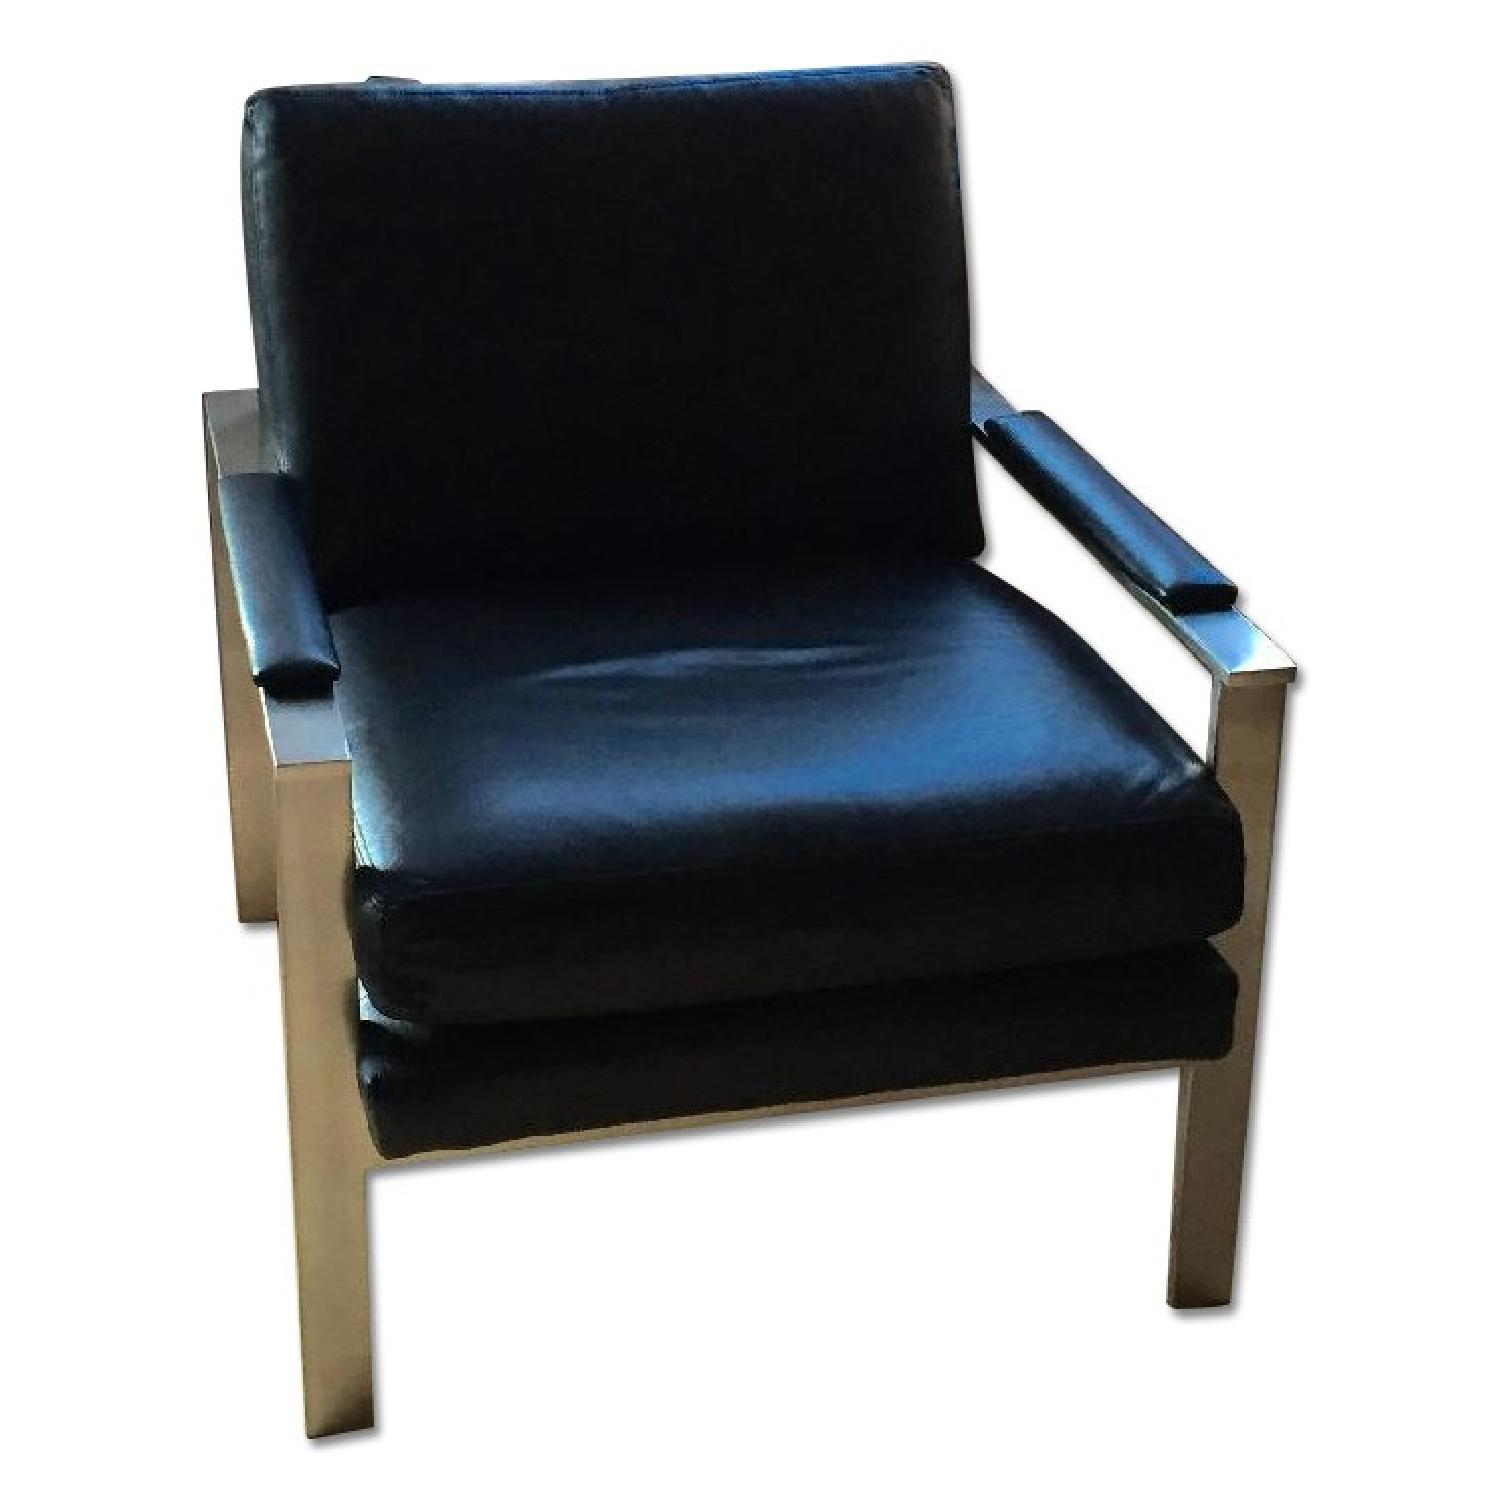 Ethan Allen Jericho Leather Chair - image-0